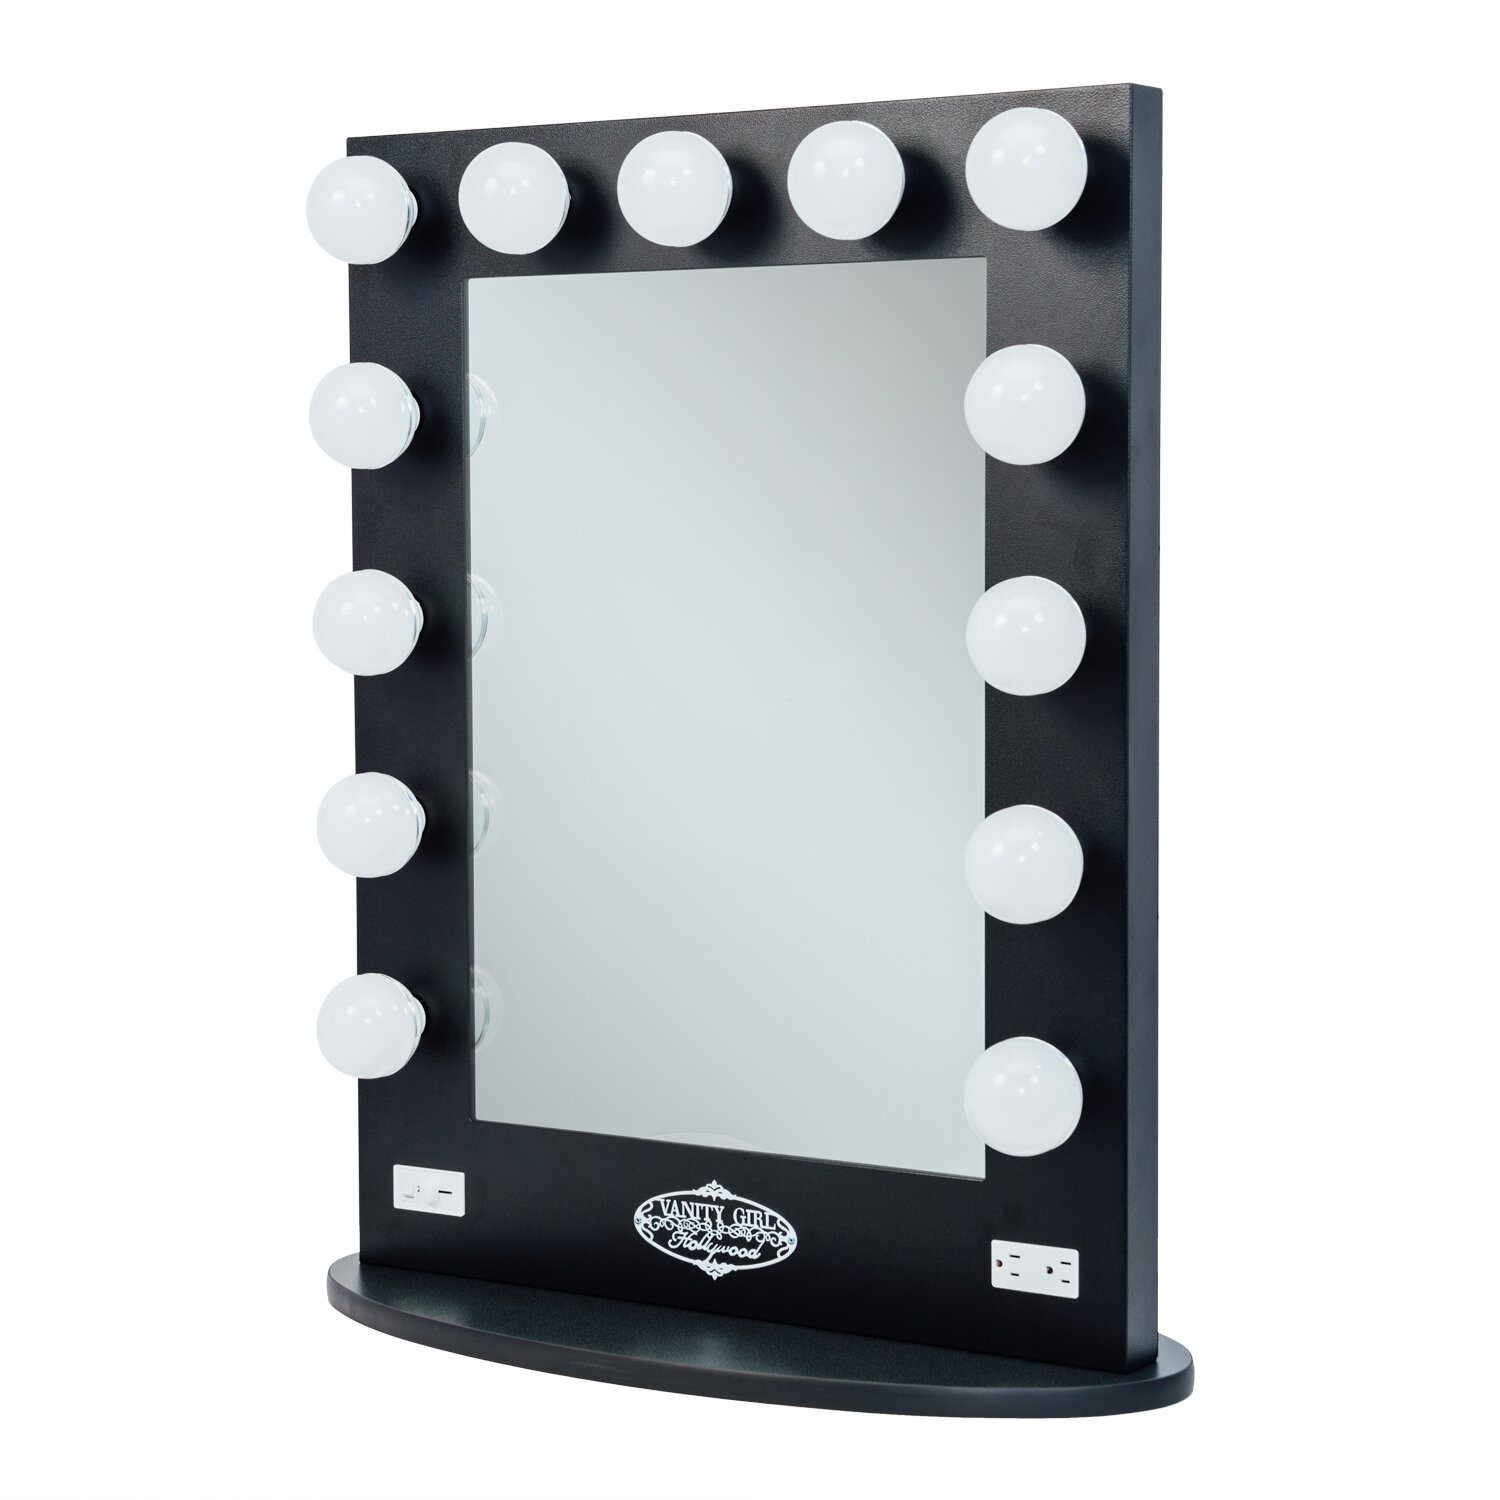 Mirror Vanity Of Vanity Girl Hollywood Broadway Lighted Vanity Mirror